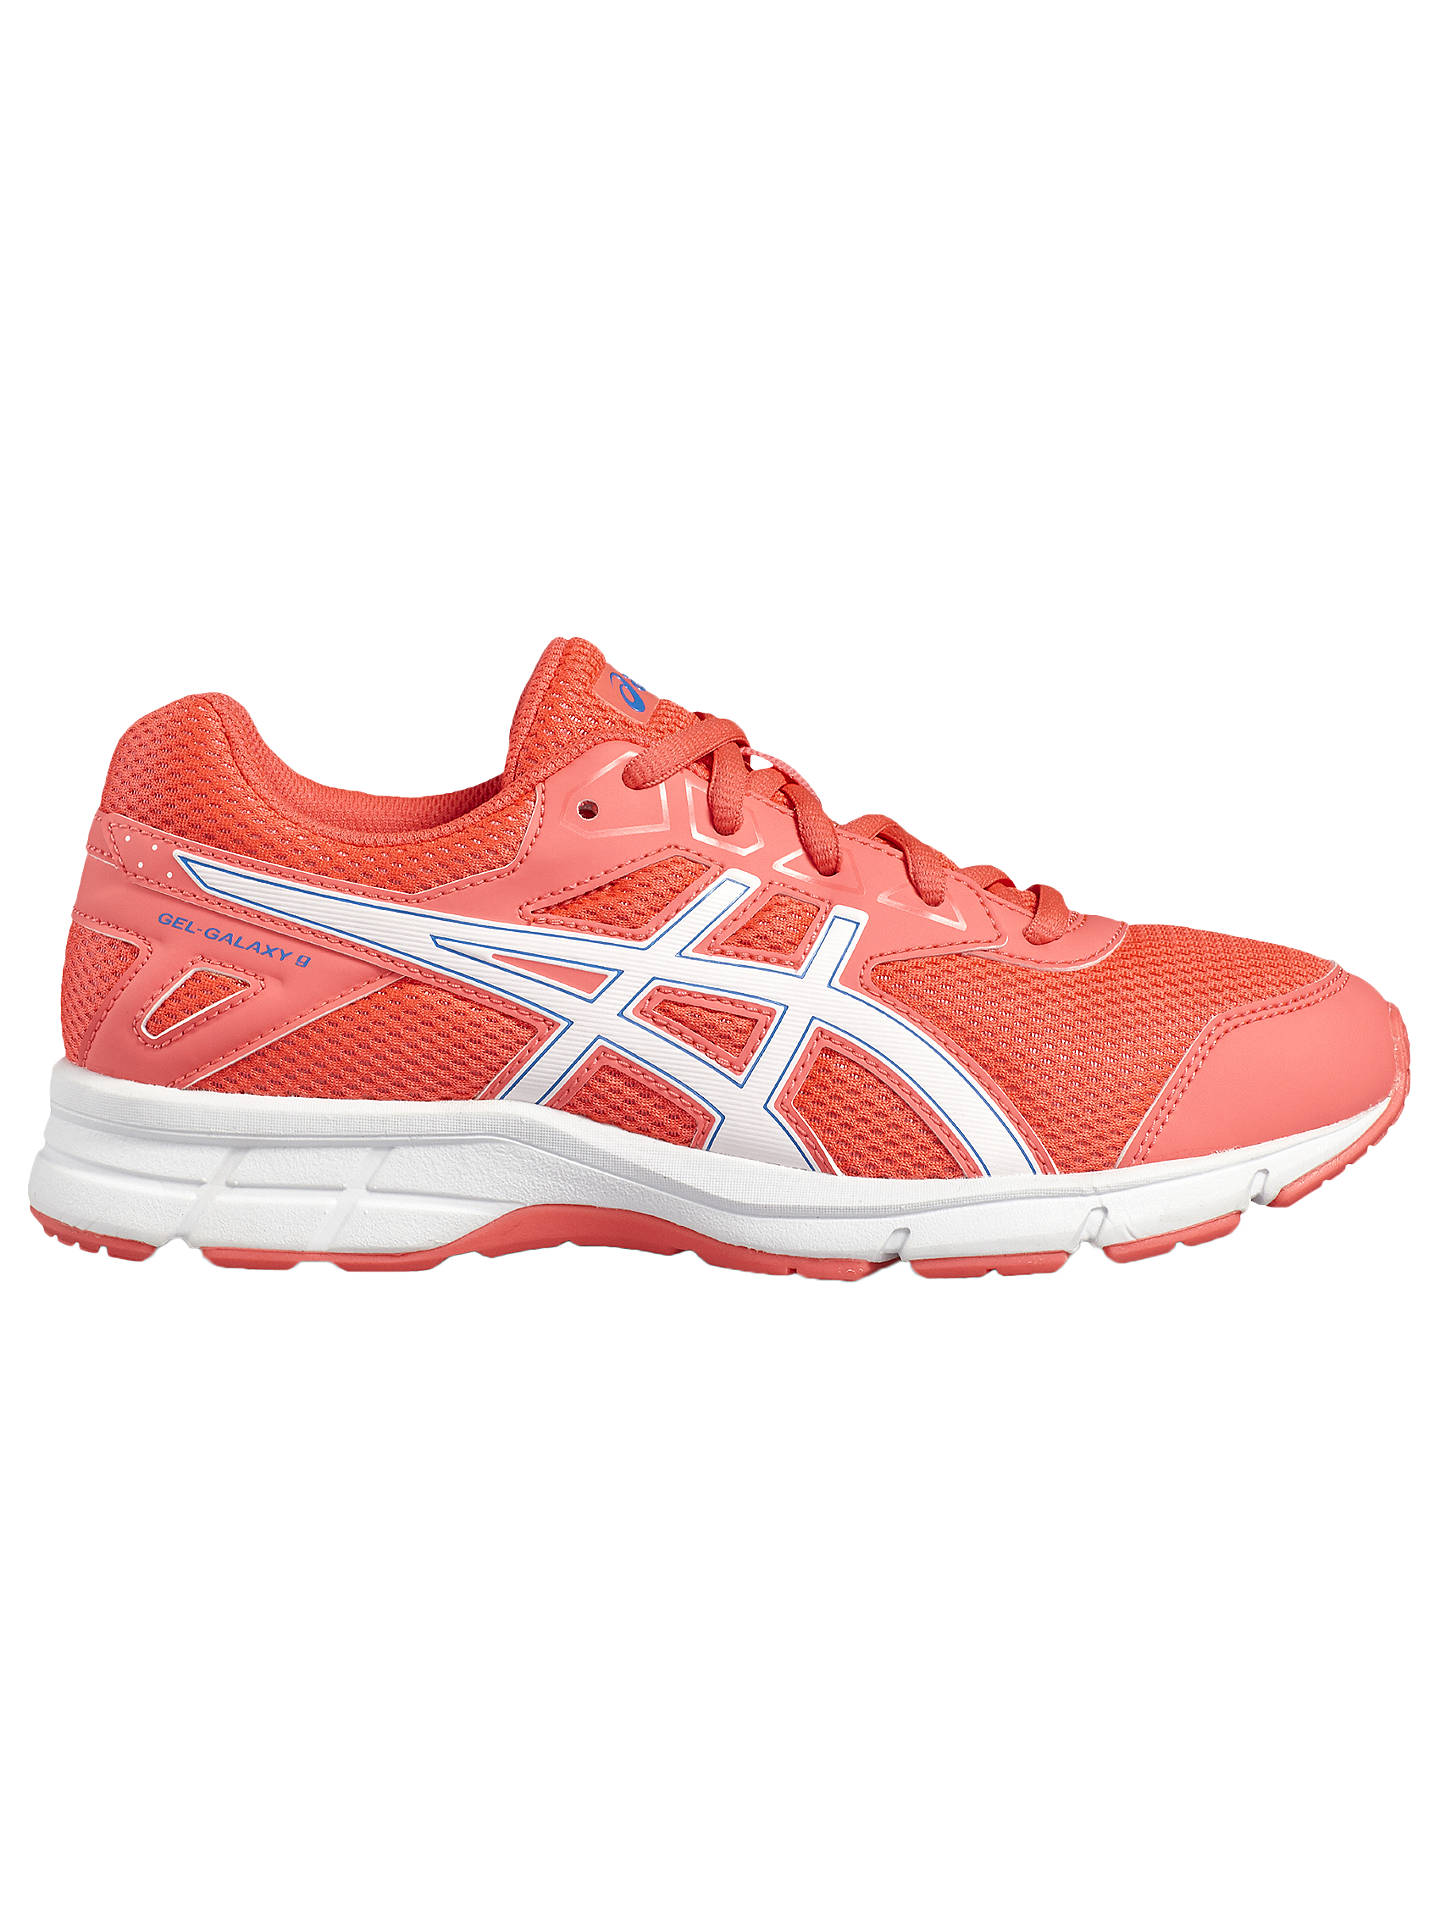 8ba5309117cc9 Buy Asics Children's Gel-Galaxy 9 GS Cushioned Laced Trainers, Pink/White,  ...